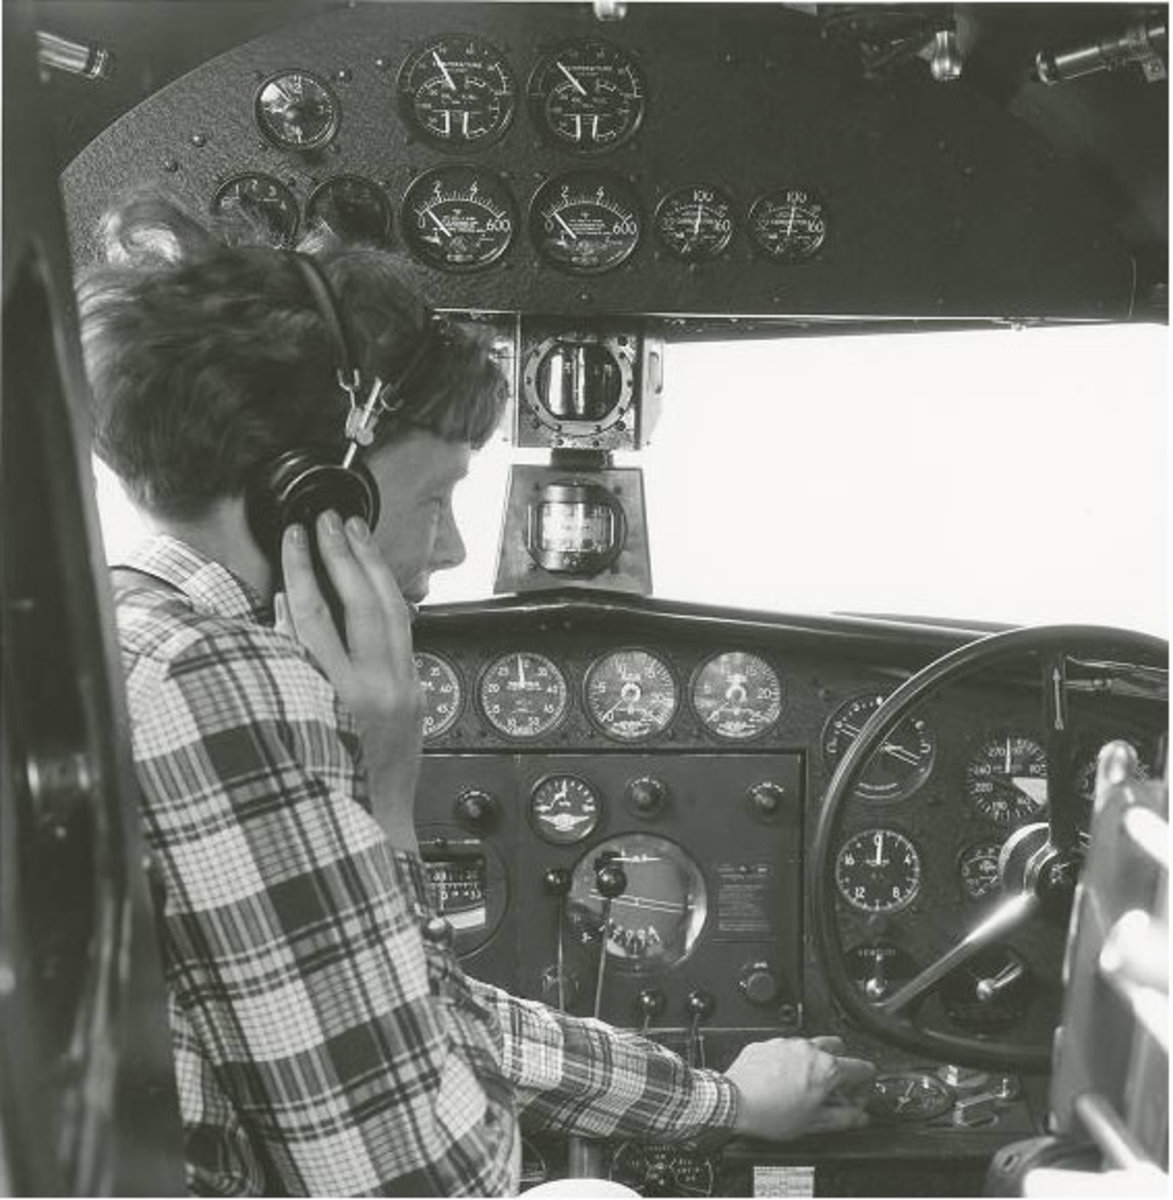 Amelia Earhart: Amelia Earhart with headphones adjusting the controls in the cockpit of her Lockheed Electra. George Palmer Putnam Collection of Amelia Earhart Papers, Courtesy of Purdue University Libraries, Karnes Archives and Special Collections.